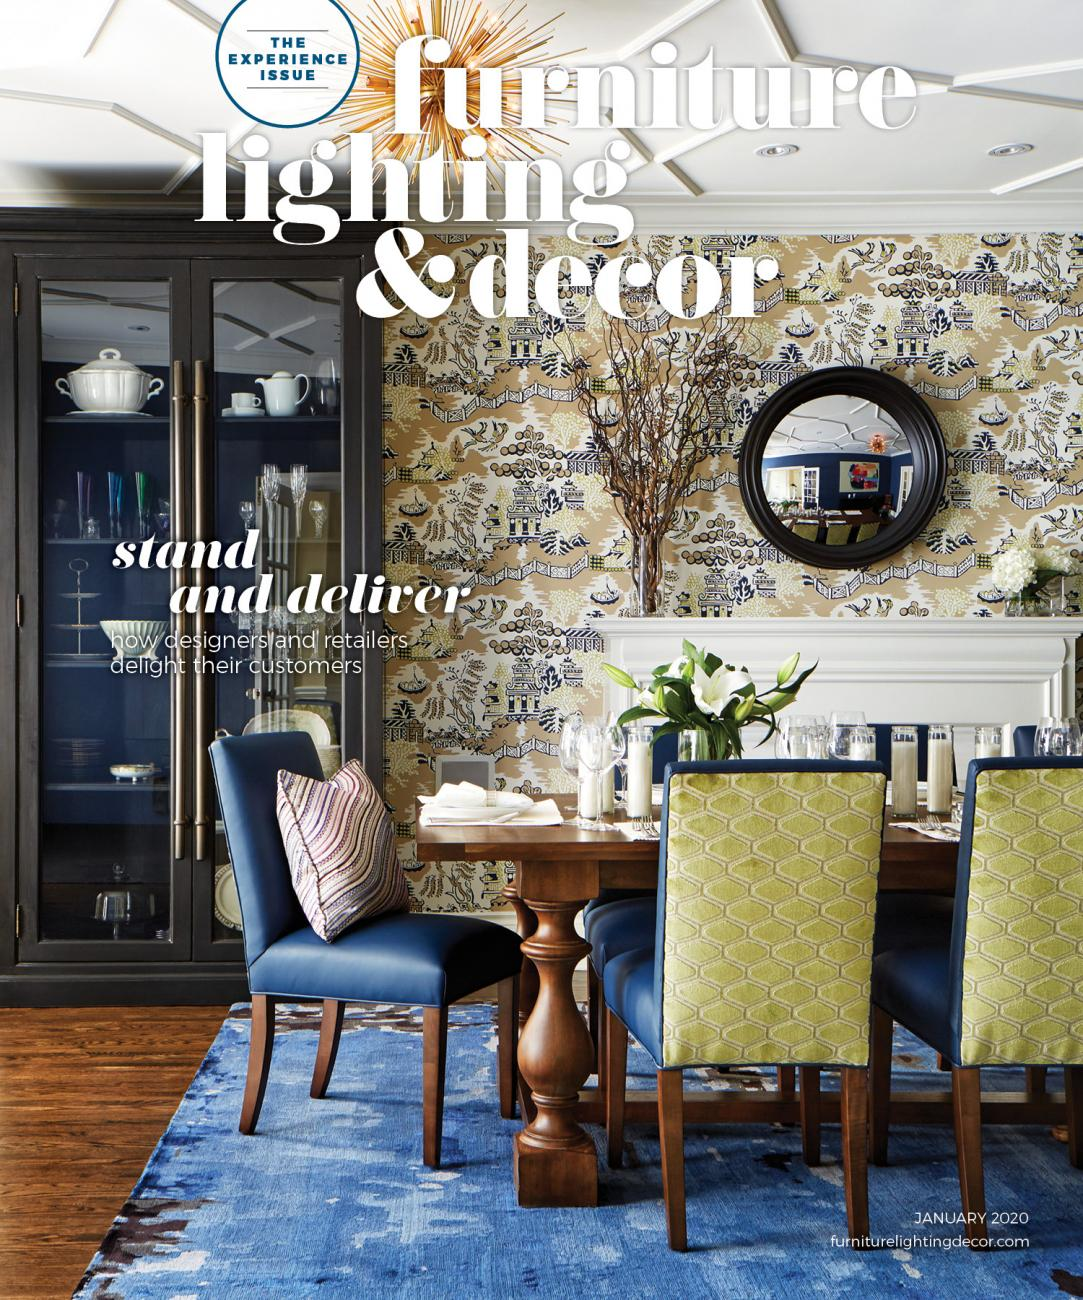 Furniture Lighting & Decor January 2020